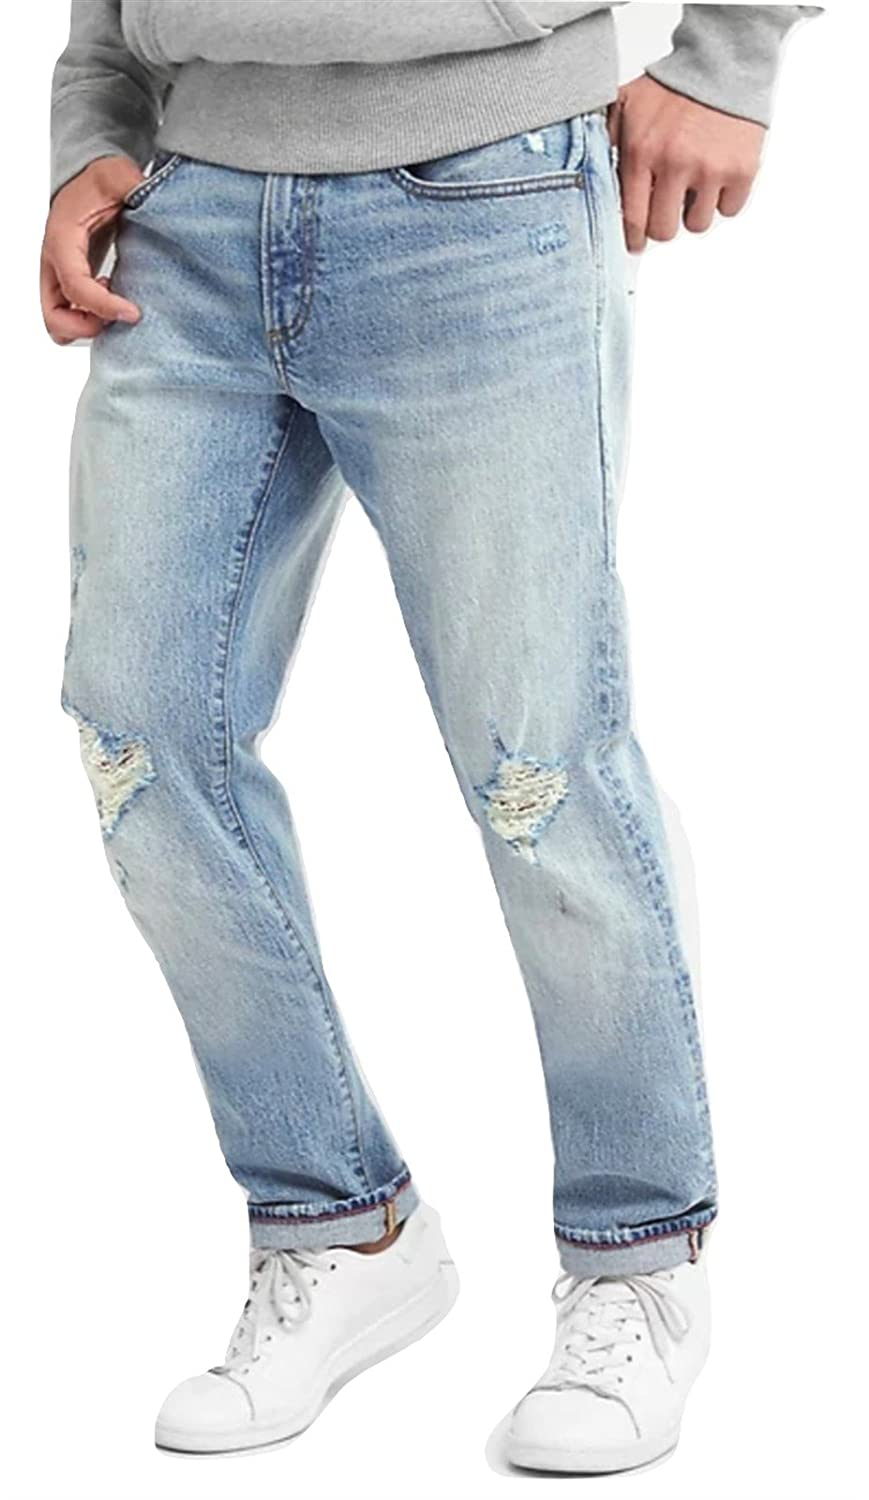 2d36f5c8 GAP Jeans Distressed Jeans in Slim Fit with GapFlex - Mens at Amazon Men's  Clothing store: